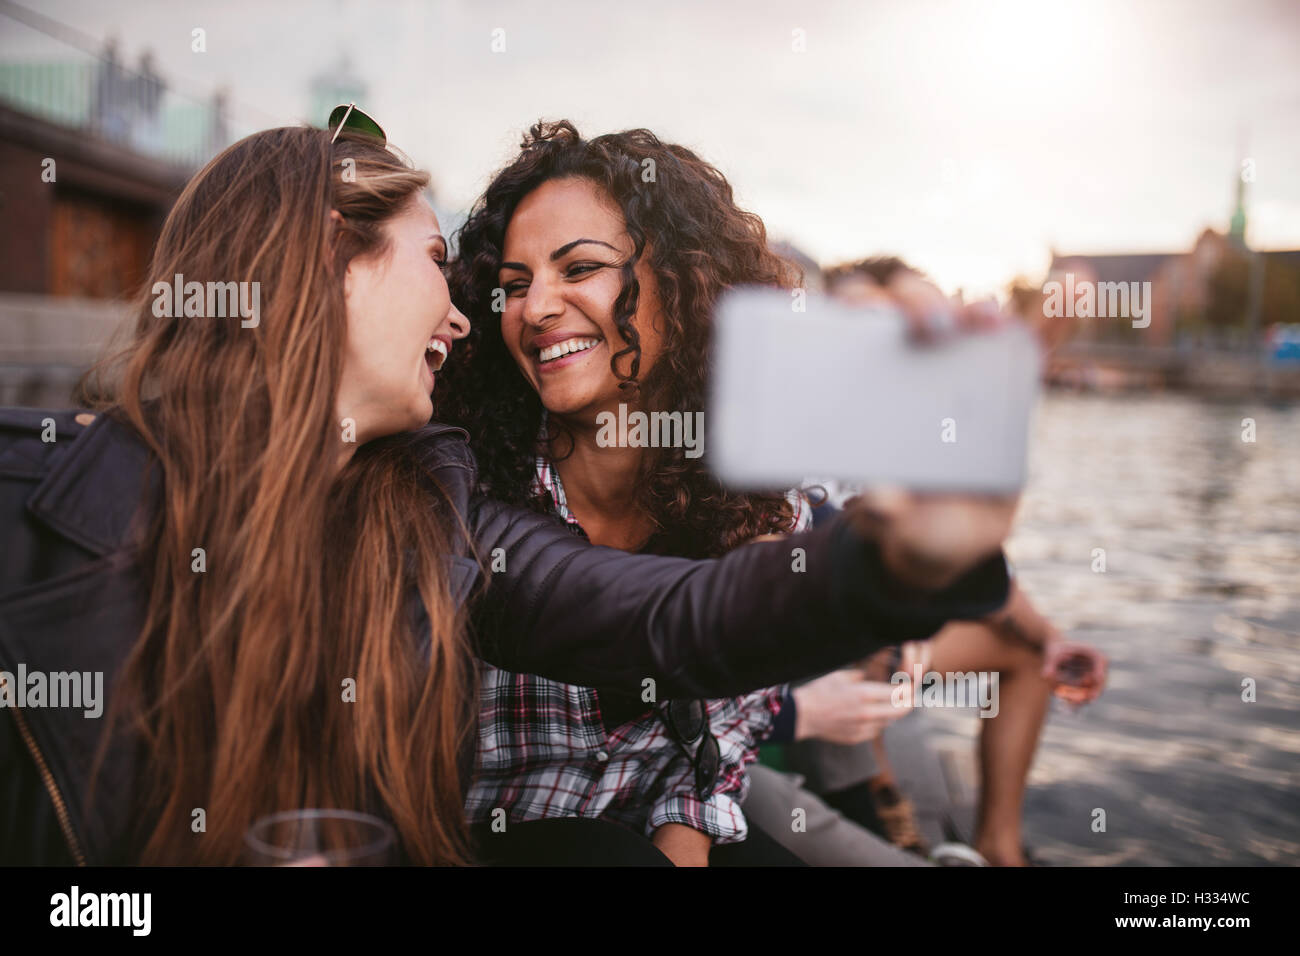 Cheerful young women friends en tenant par les selfies lake. Meilleurs amis de s'amuser ensemble. Banque D'Images